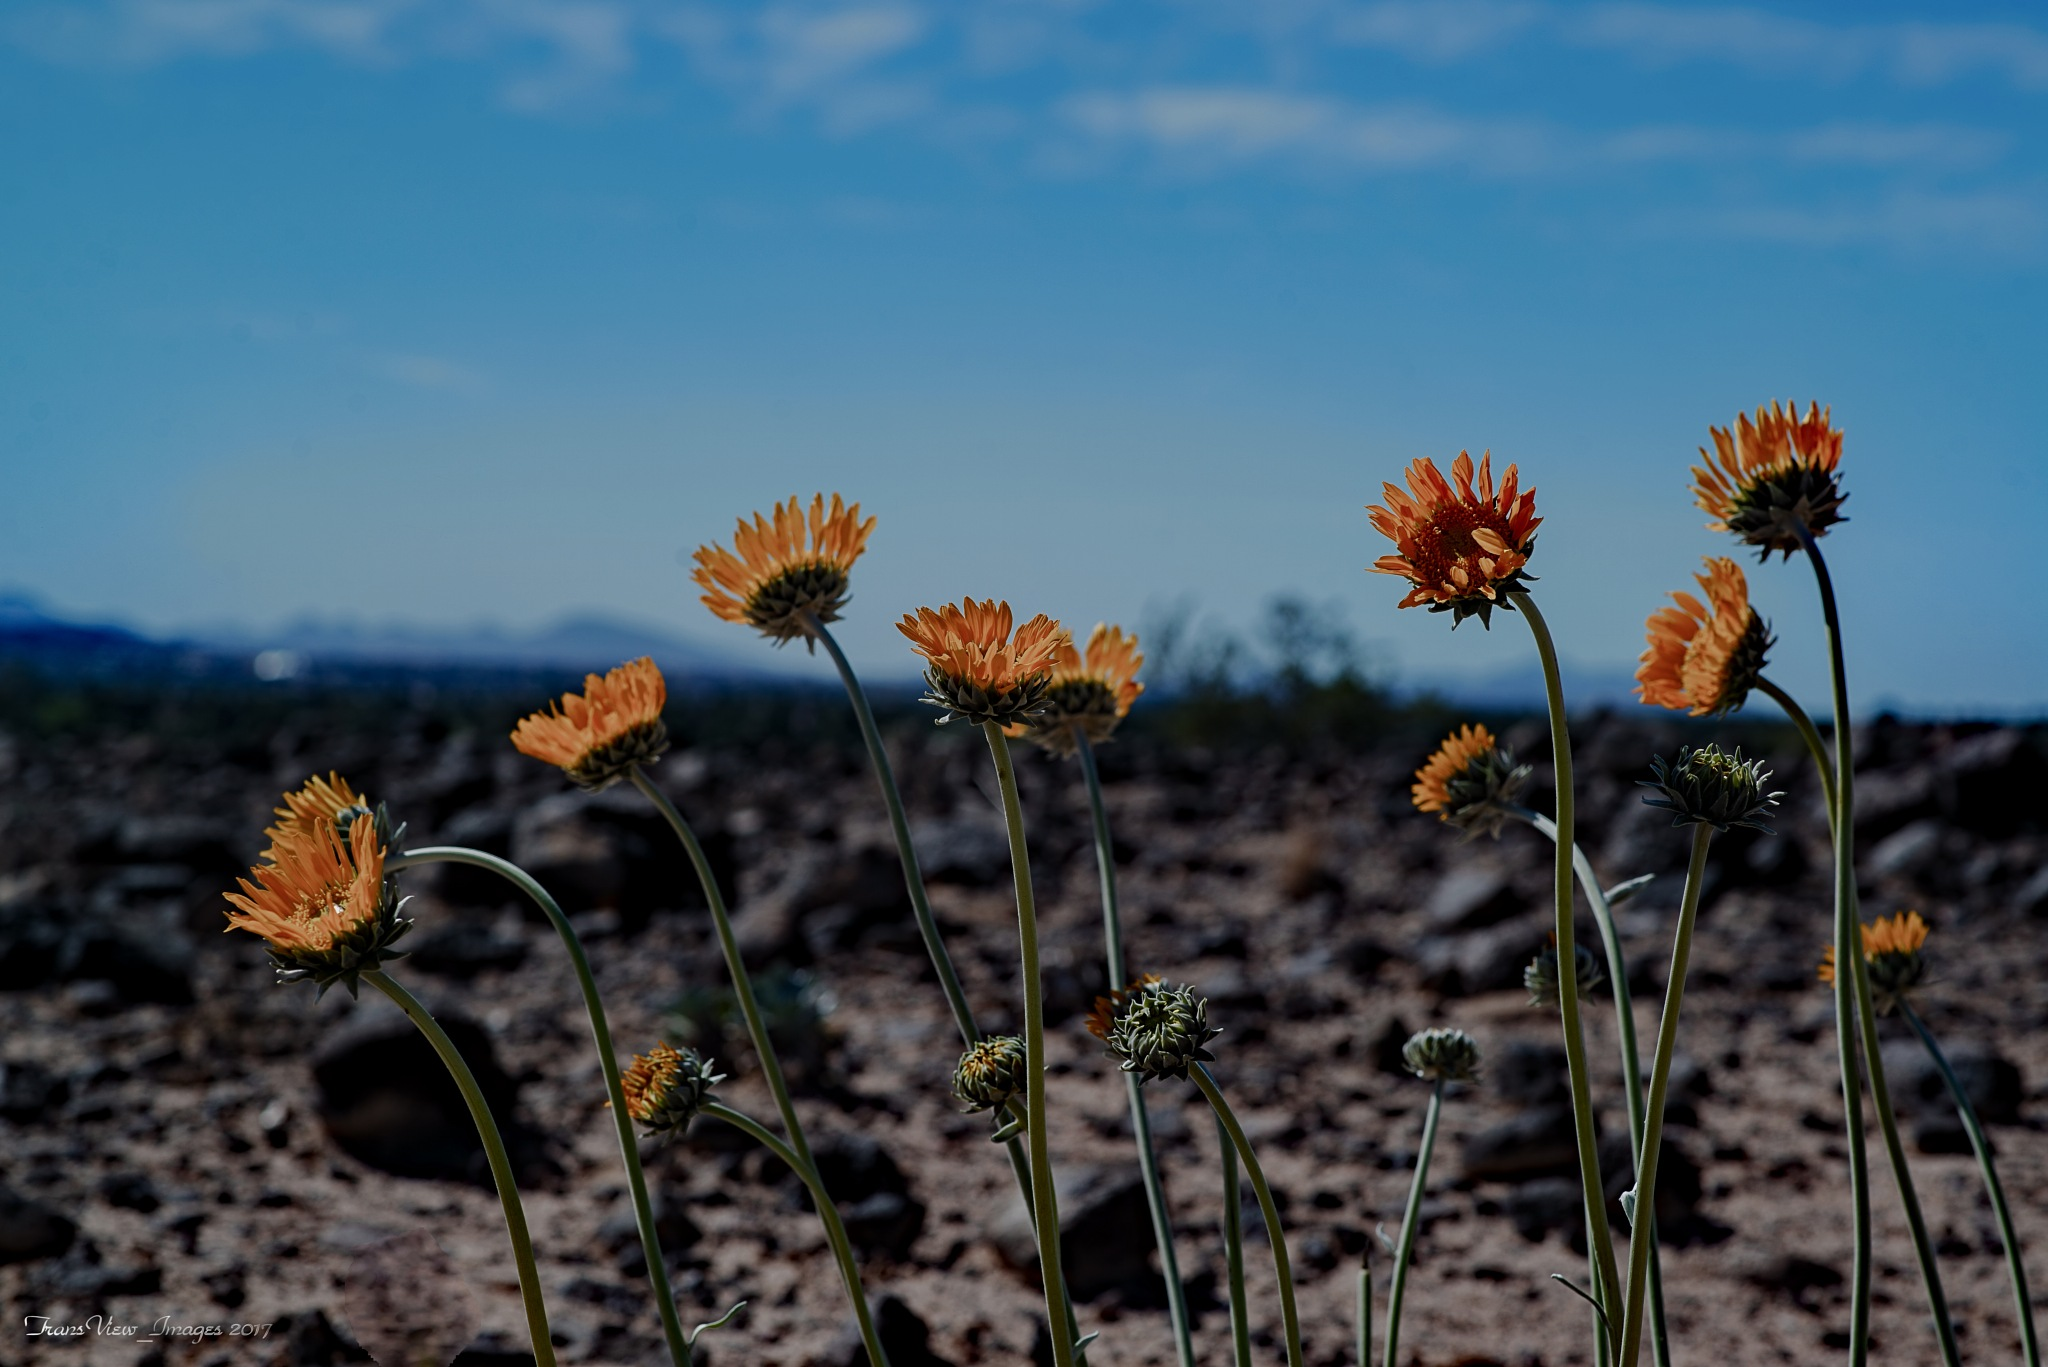 Living in the desert by Transfiguracion Images